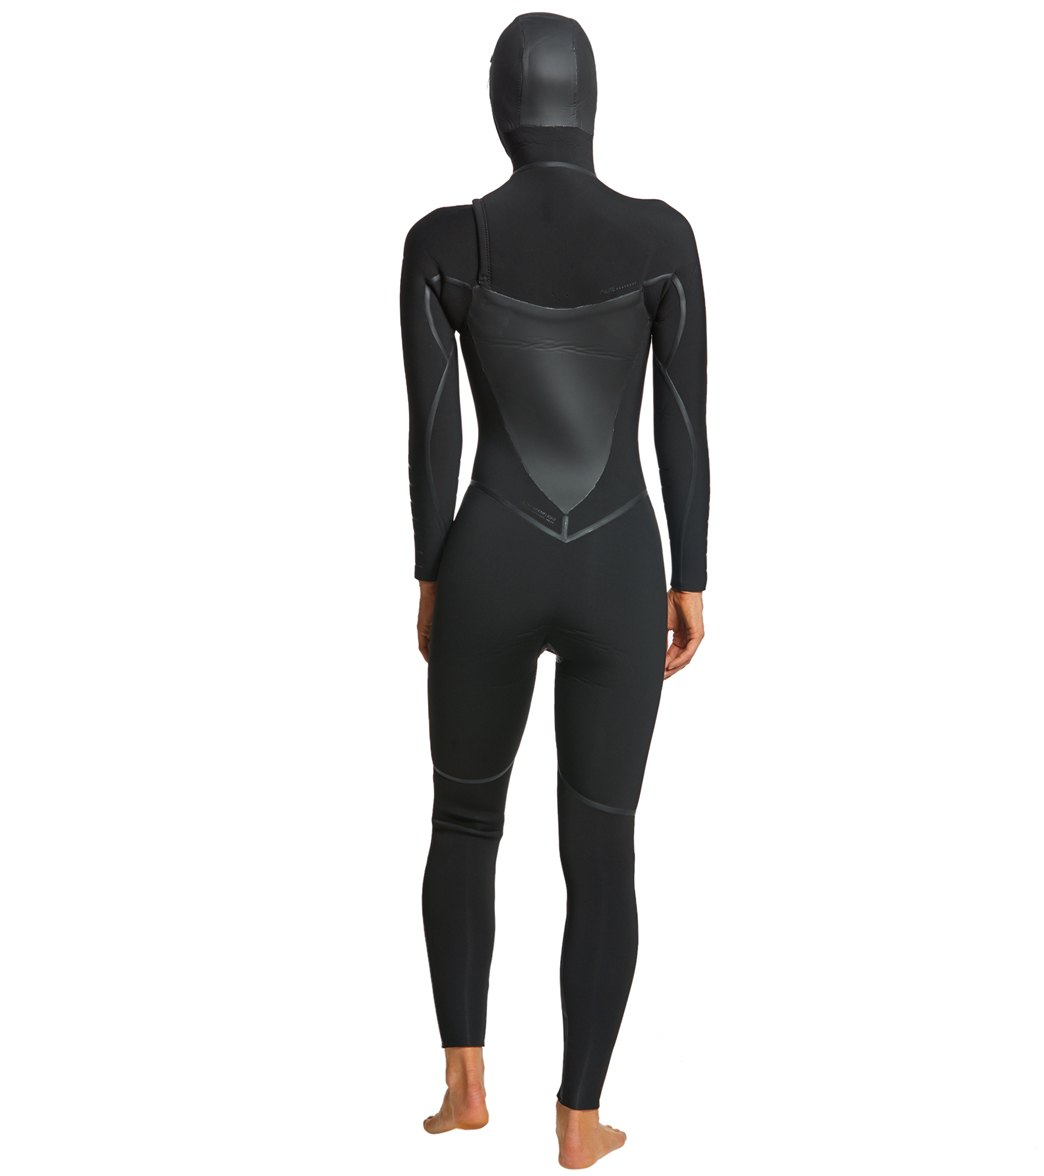 Roxy Women s 5 4 3MM Syncro Plus Hooded Chest Zip Wetsuit at ... 912781140